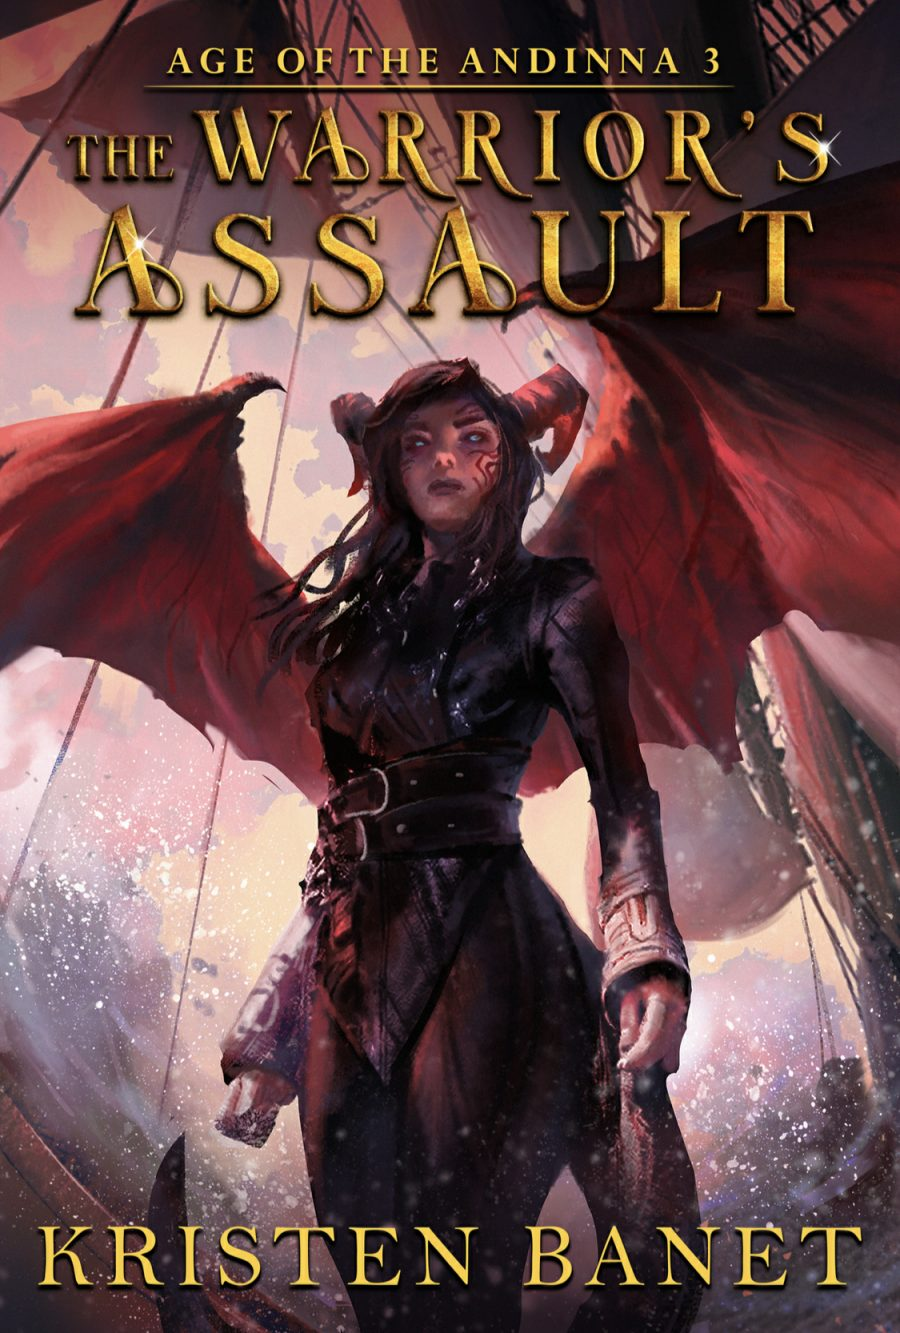 The Warrior's Assault by Kristen Banet - A Book Review #BookReview #EpicFantasy #SlowBurn #RH #5Stars #MustRead #Book3 #KindleUnlimited #KU